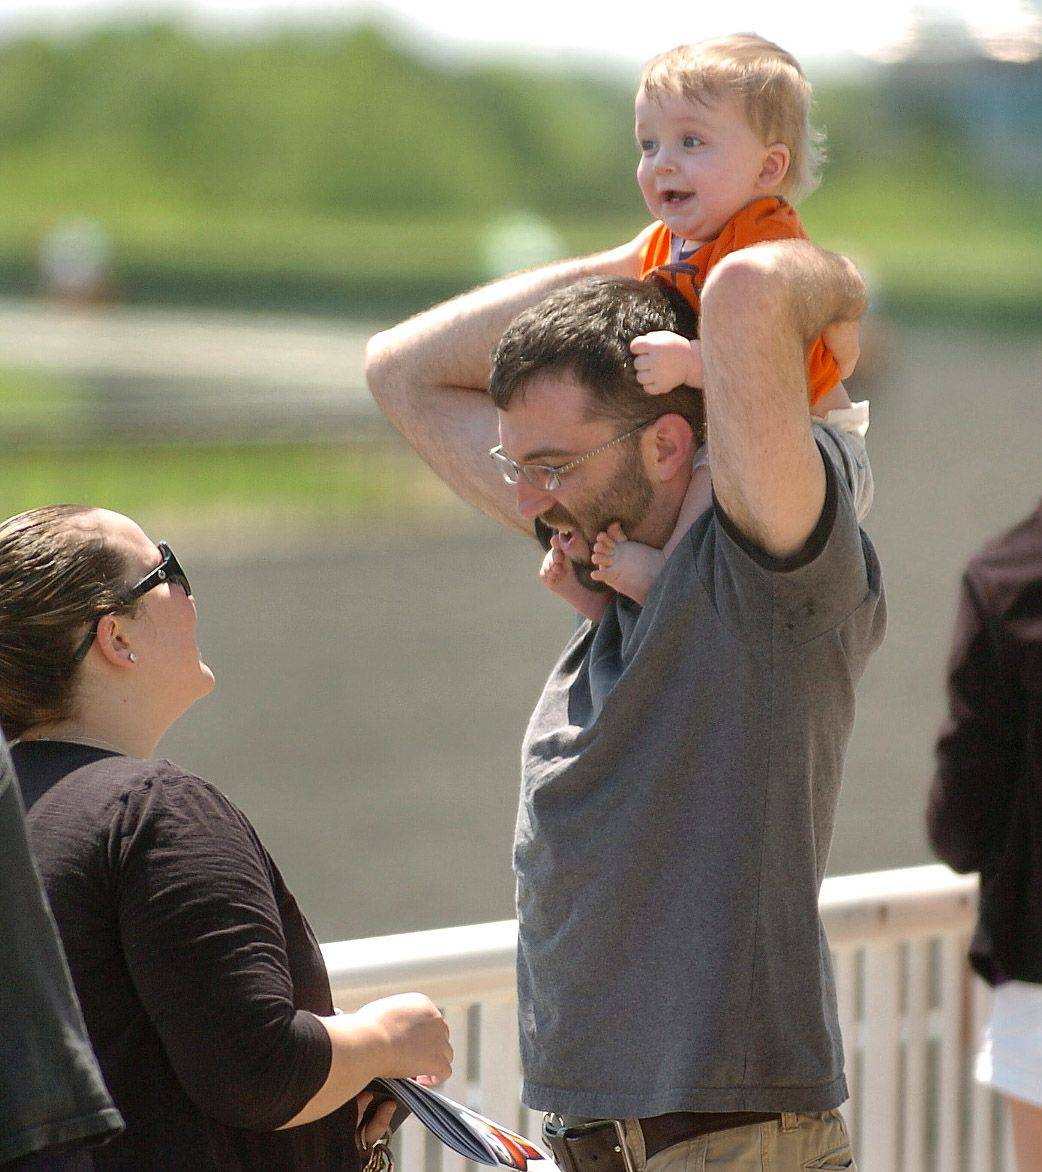 While Tony Ardizzone and Jessica Armour of Lake Forest say they would play slot machines if they were available at Arlington Park, their 9-month-old son Elias just wants to get a better look at the horses.